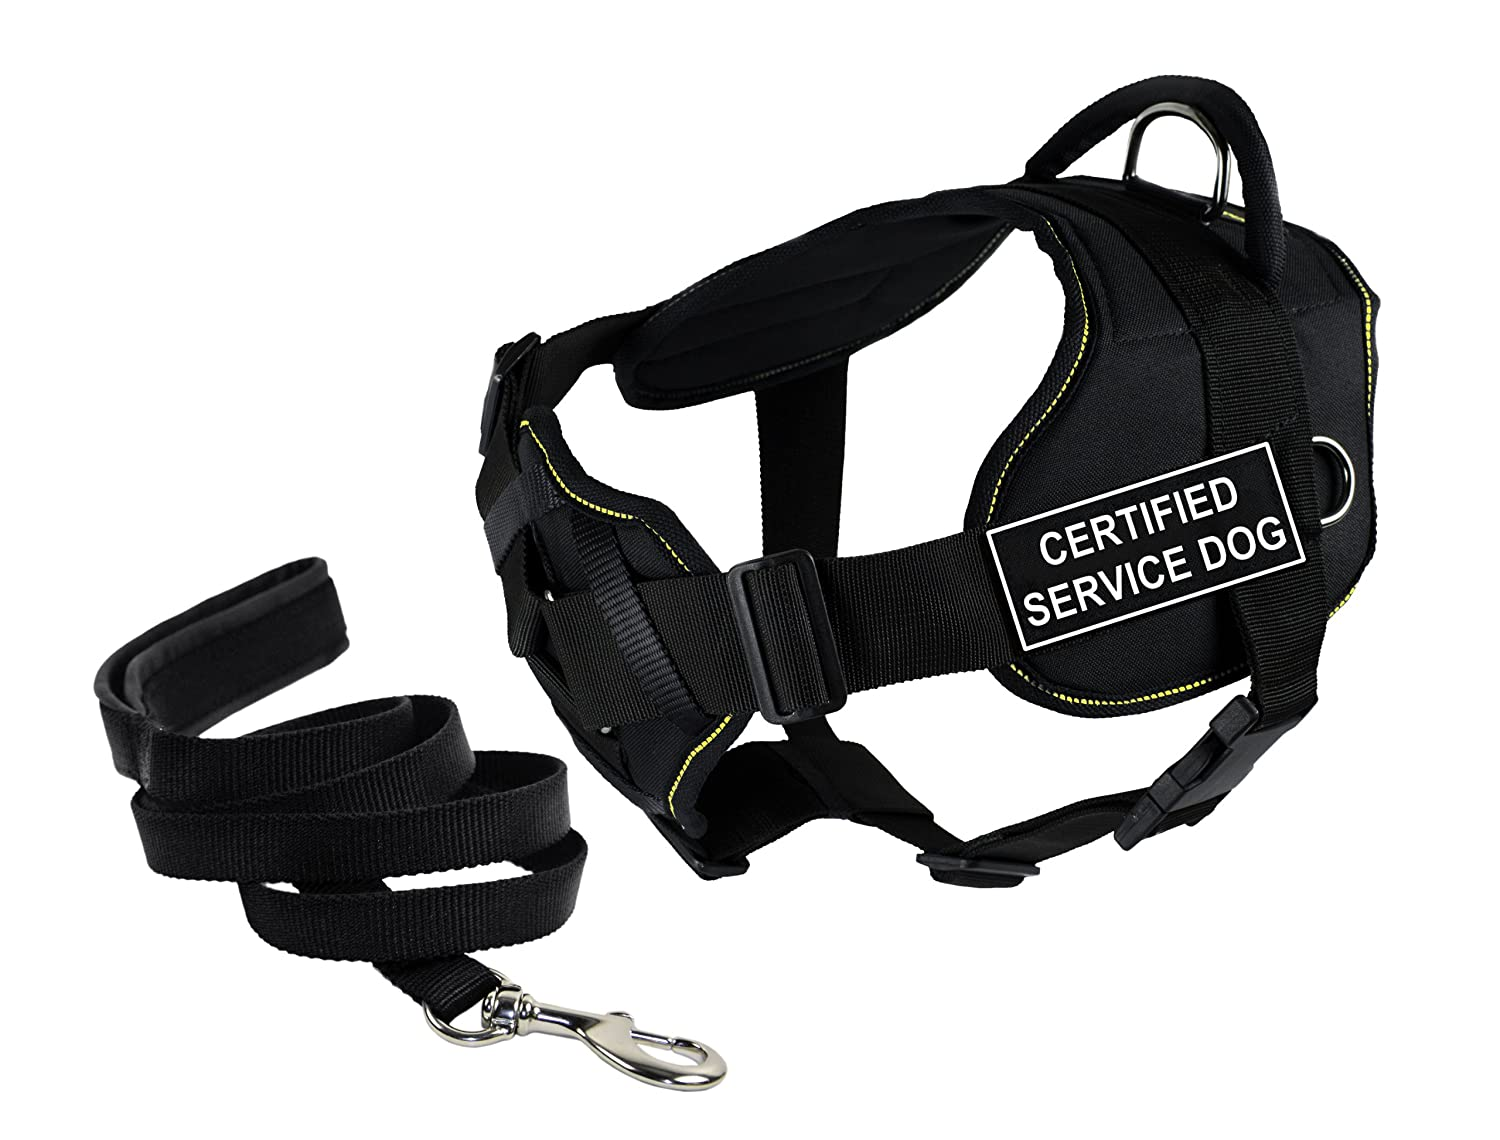 Dean & Tyler's DT Fun Chest Support CERTIFIED SERVICE DOG Harness, Medium, with 6 ft Padded Puppy Leash.